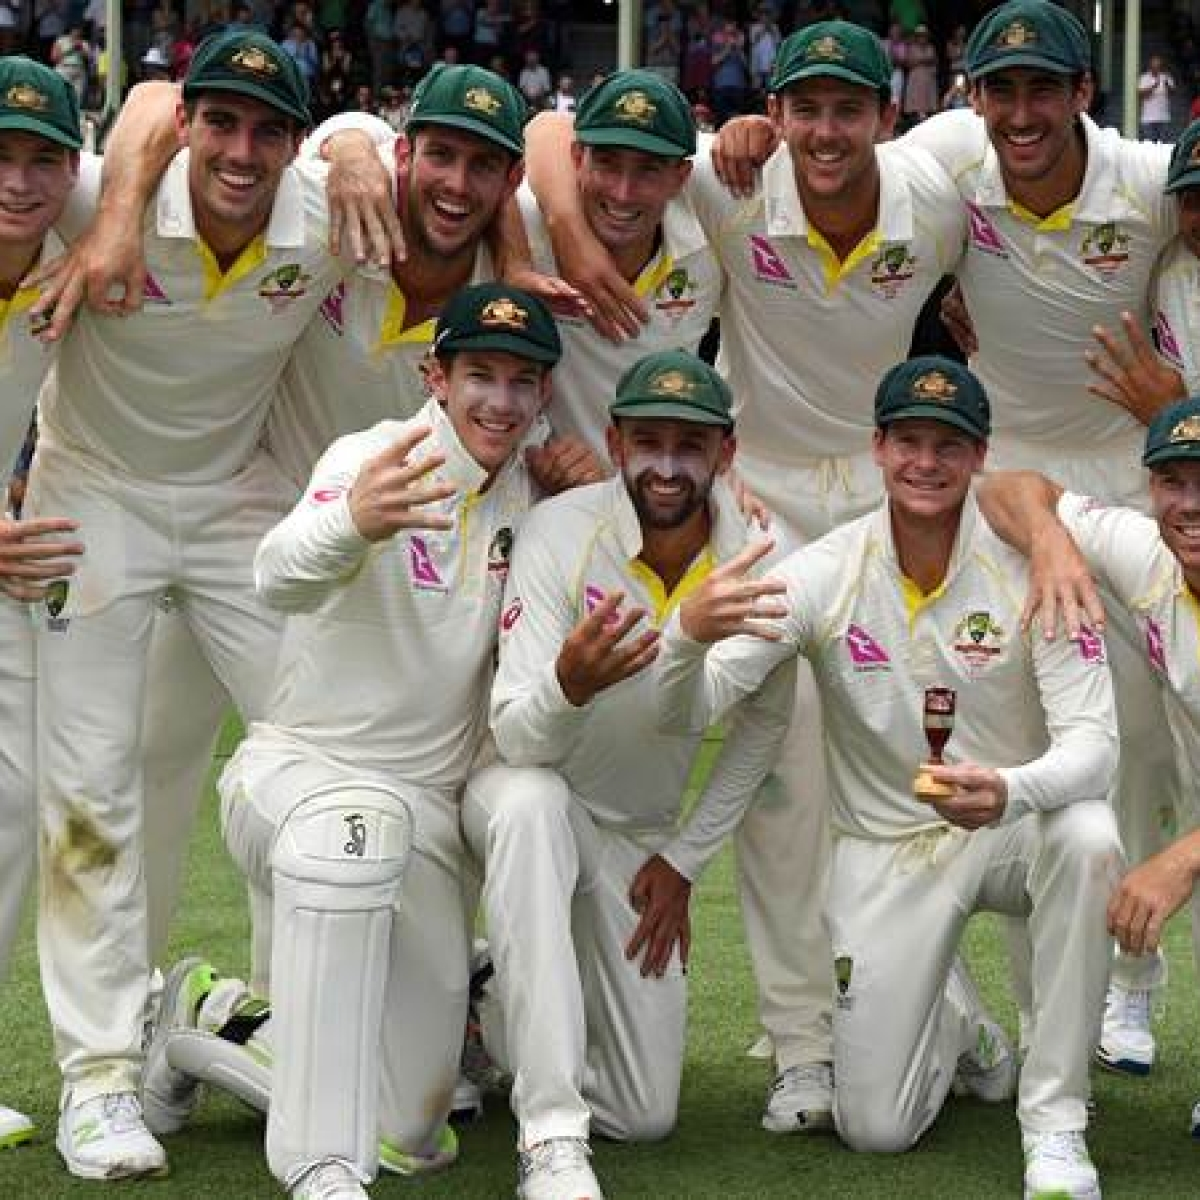 Circumstances will dictate venues for India series, says Cricket Australia chief executive Kevin Roberts